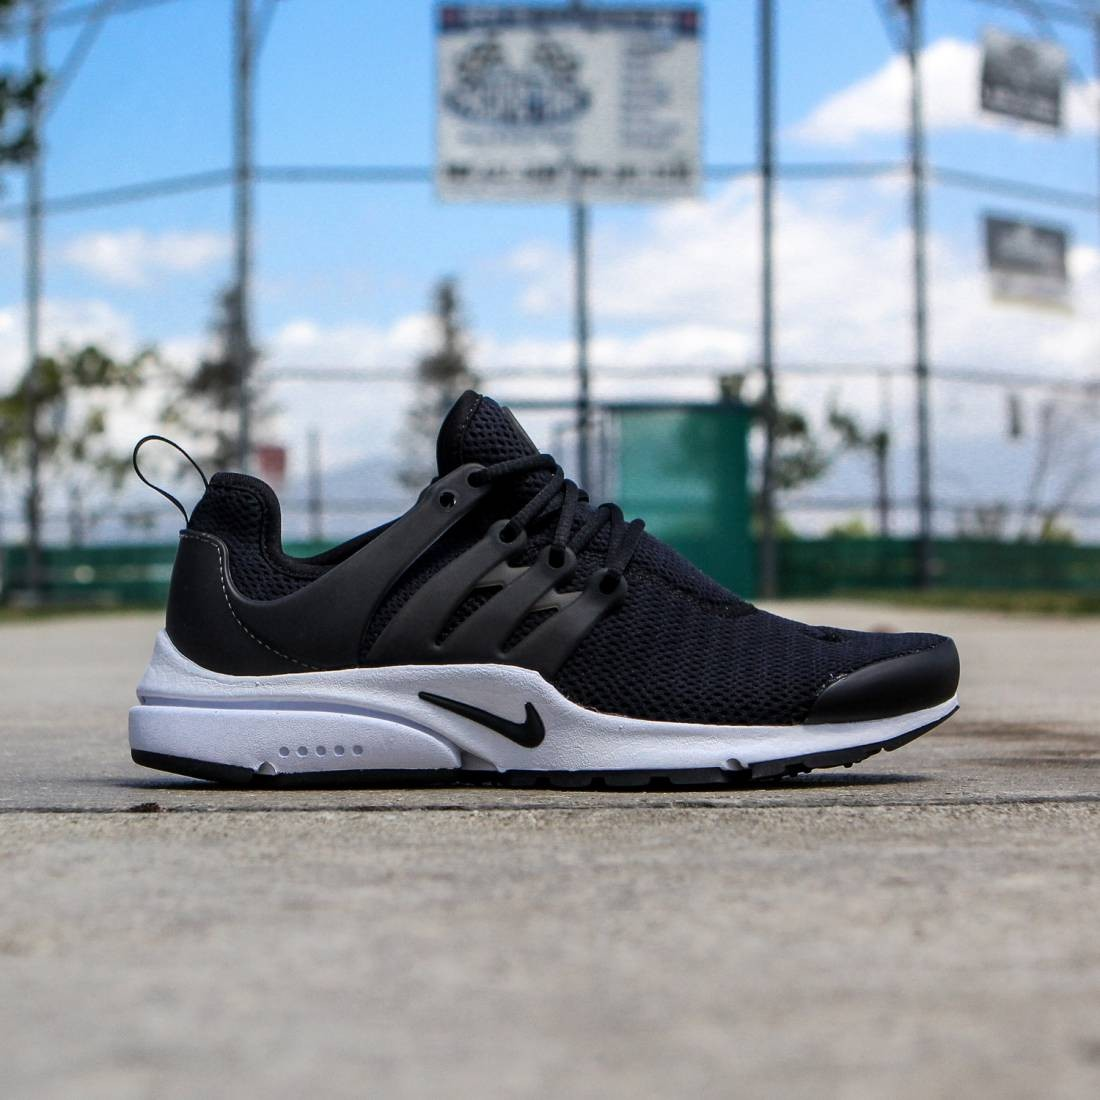 the best attitude da9a7 6dc20 Nike Women NIKE AIR PRESTO (black / white / black)